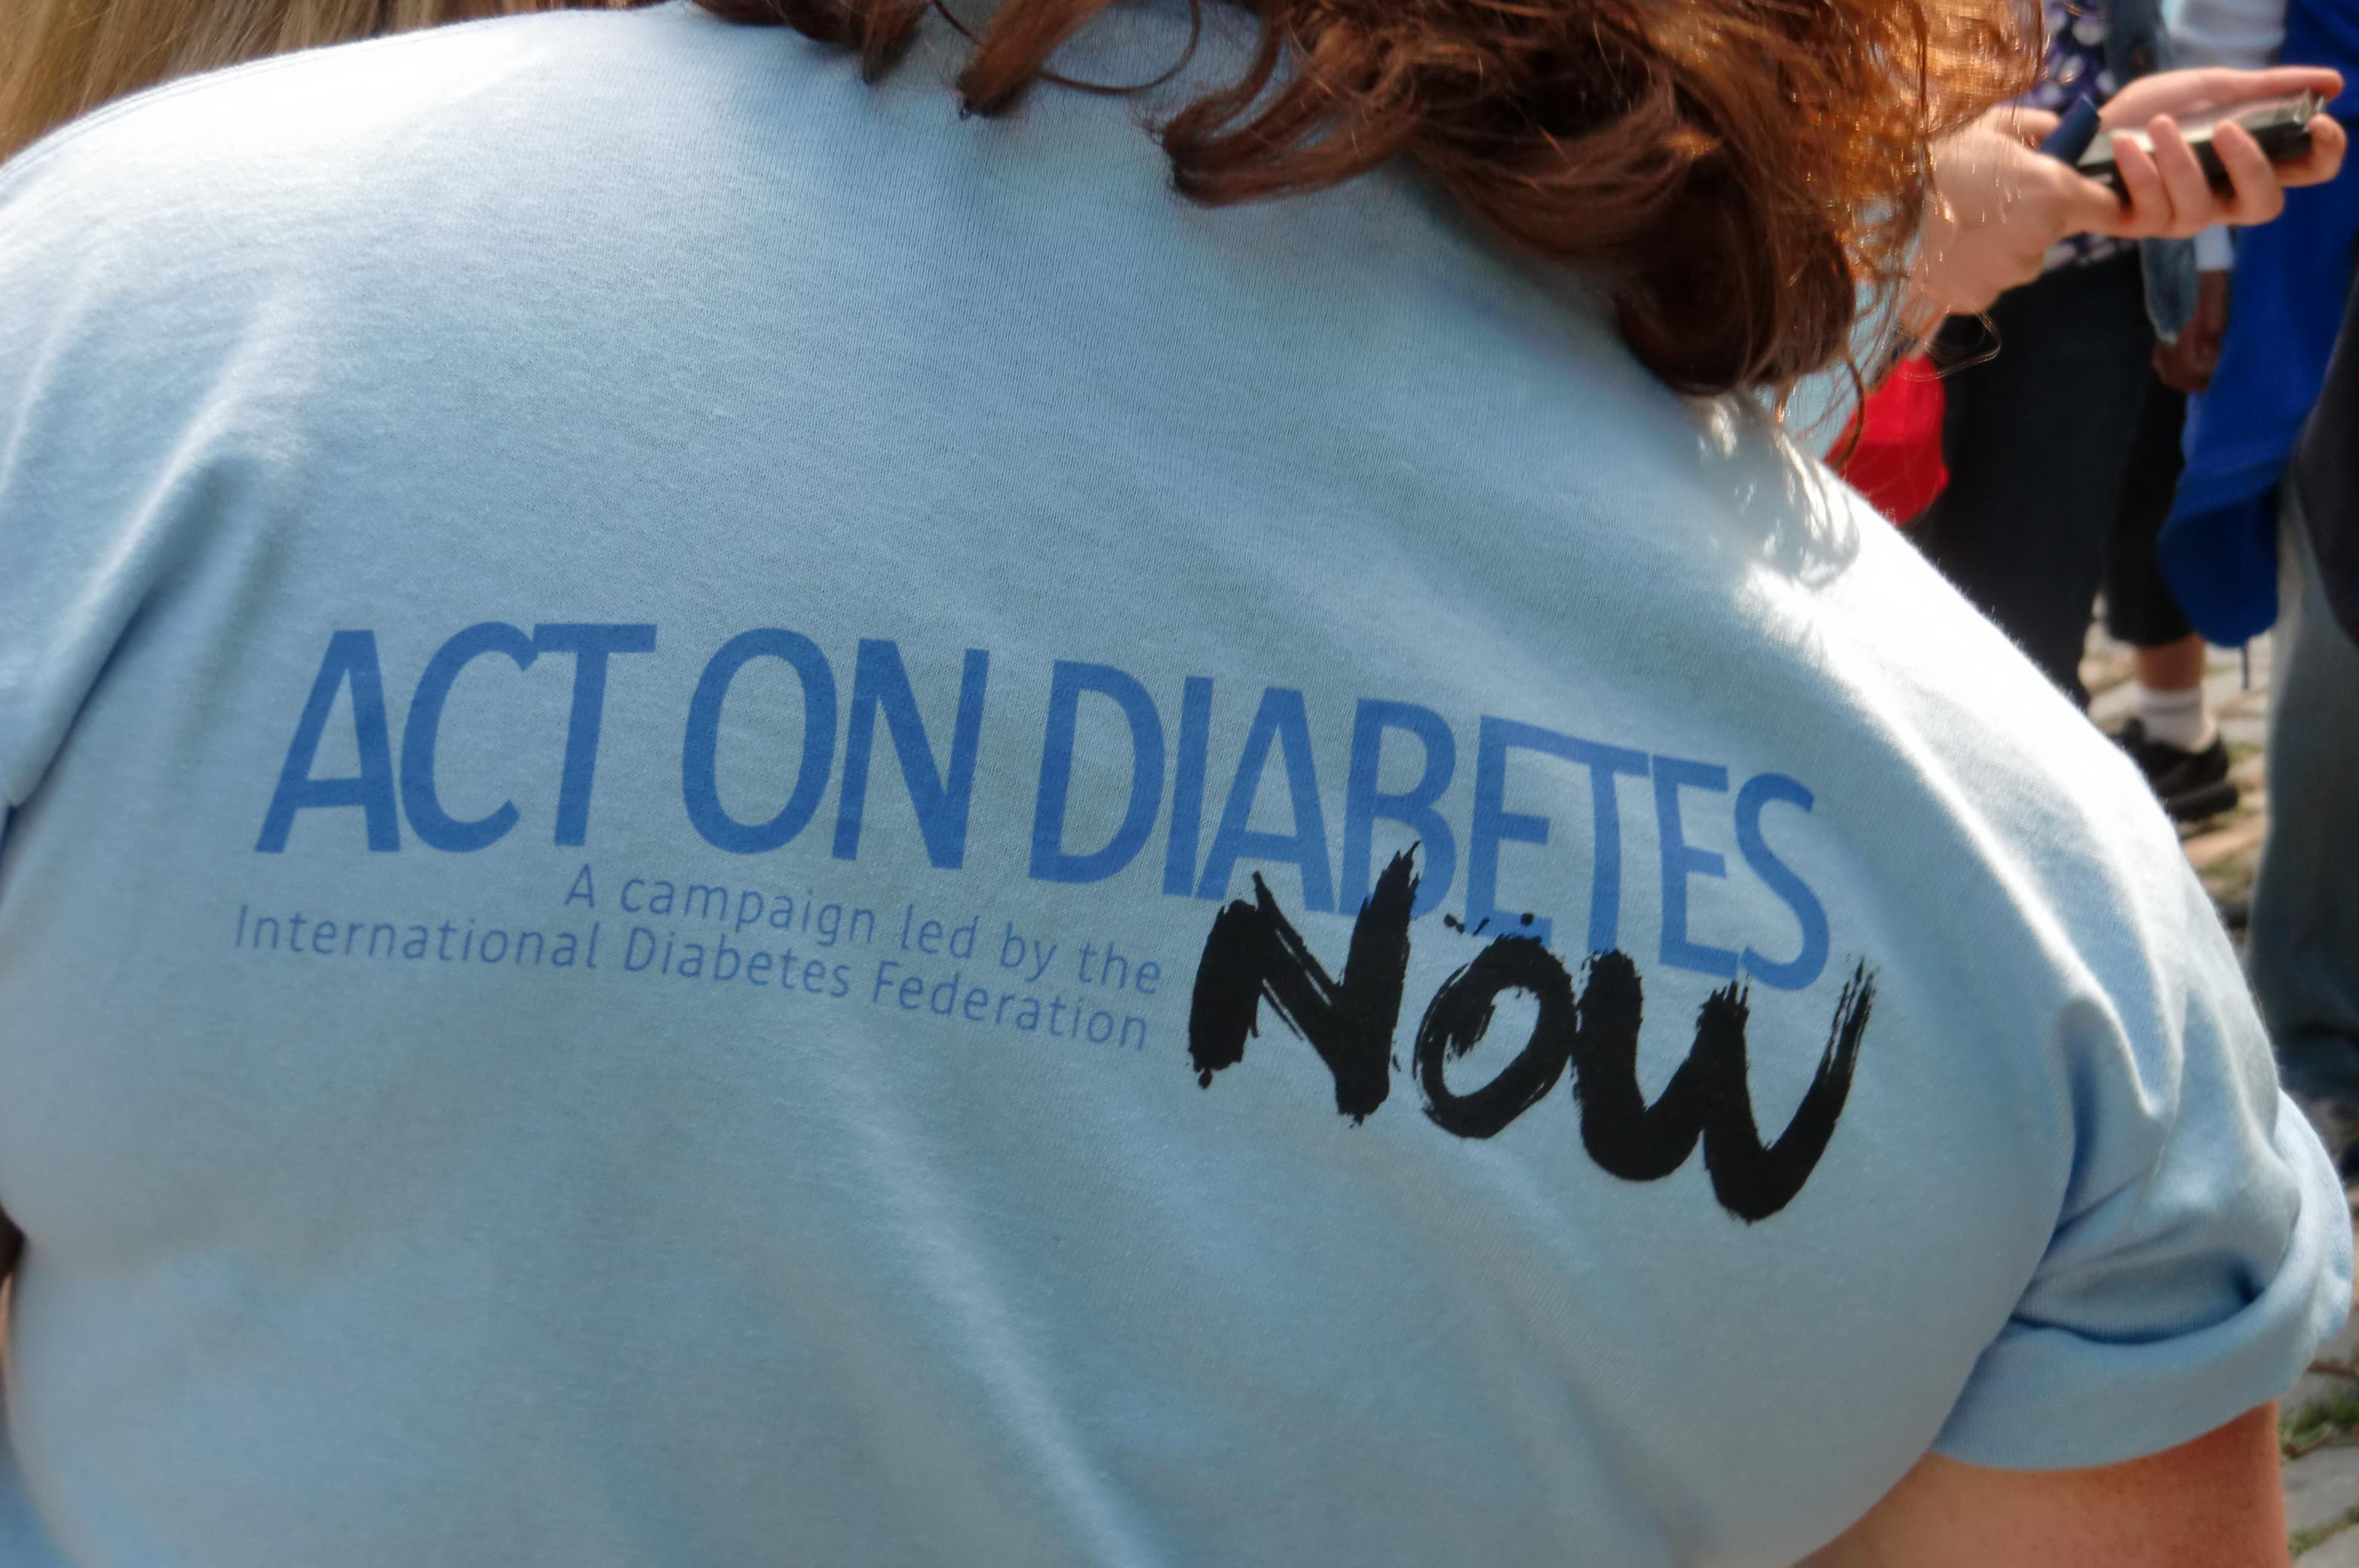 UN-Gipfel 2011: Act on diabetes now